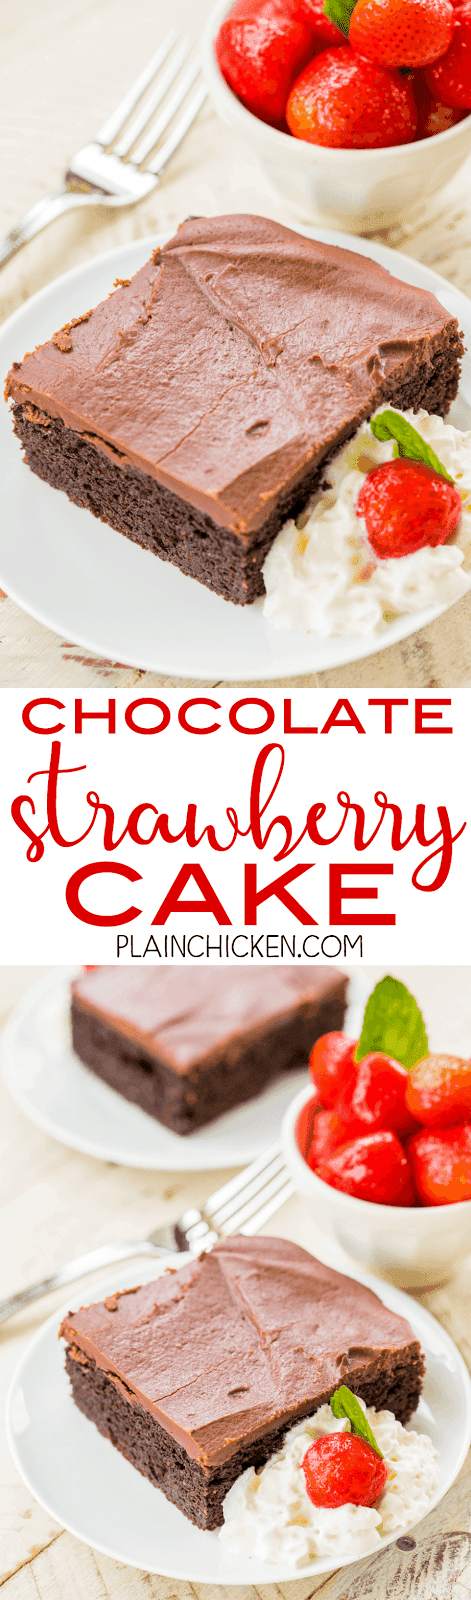 Chocolate Strawberry Pie Cake - chocolate cake mix and strawberry pie filling combine to make one amazing dessert!!! Top the cake with a quick homemade chocolate frosting. This cake is the most requested cake I make! I have to bring it to all of the potlucks I'm invited to. It is always the first dessert to go and everyone asks for the recipe! Make it today!